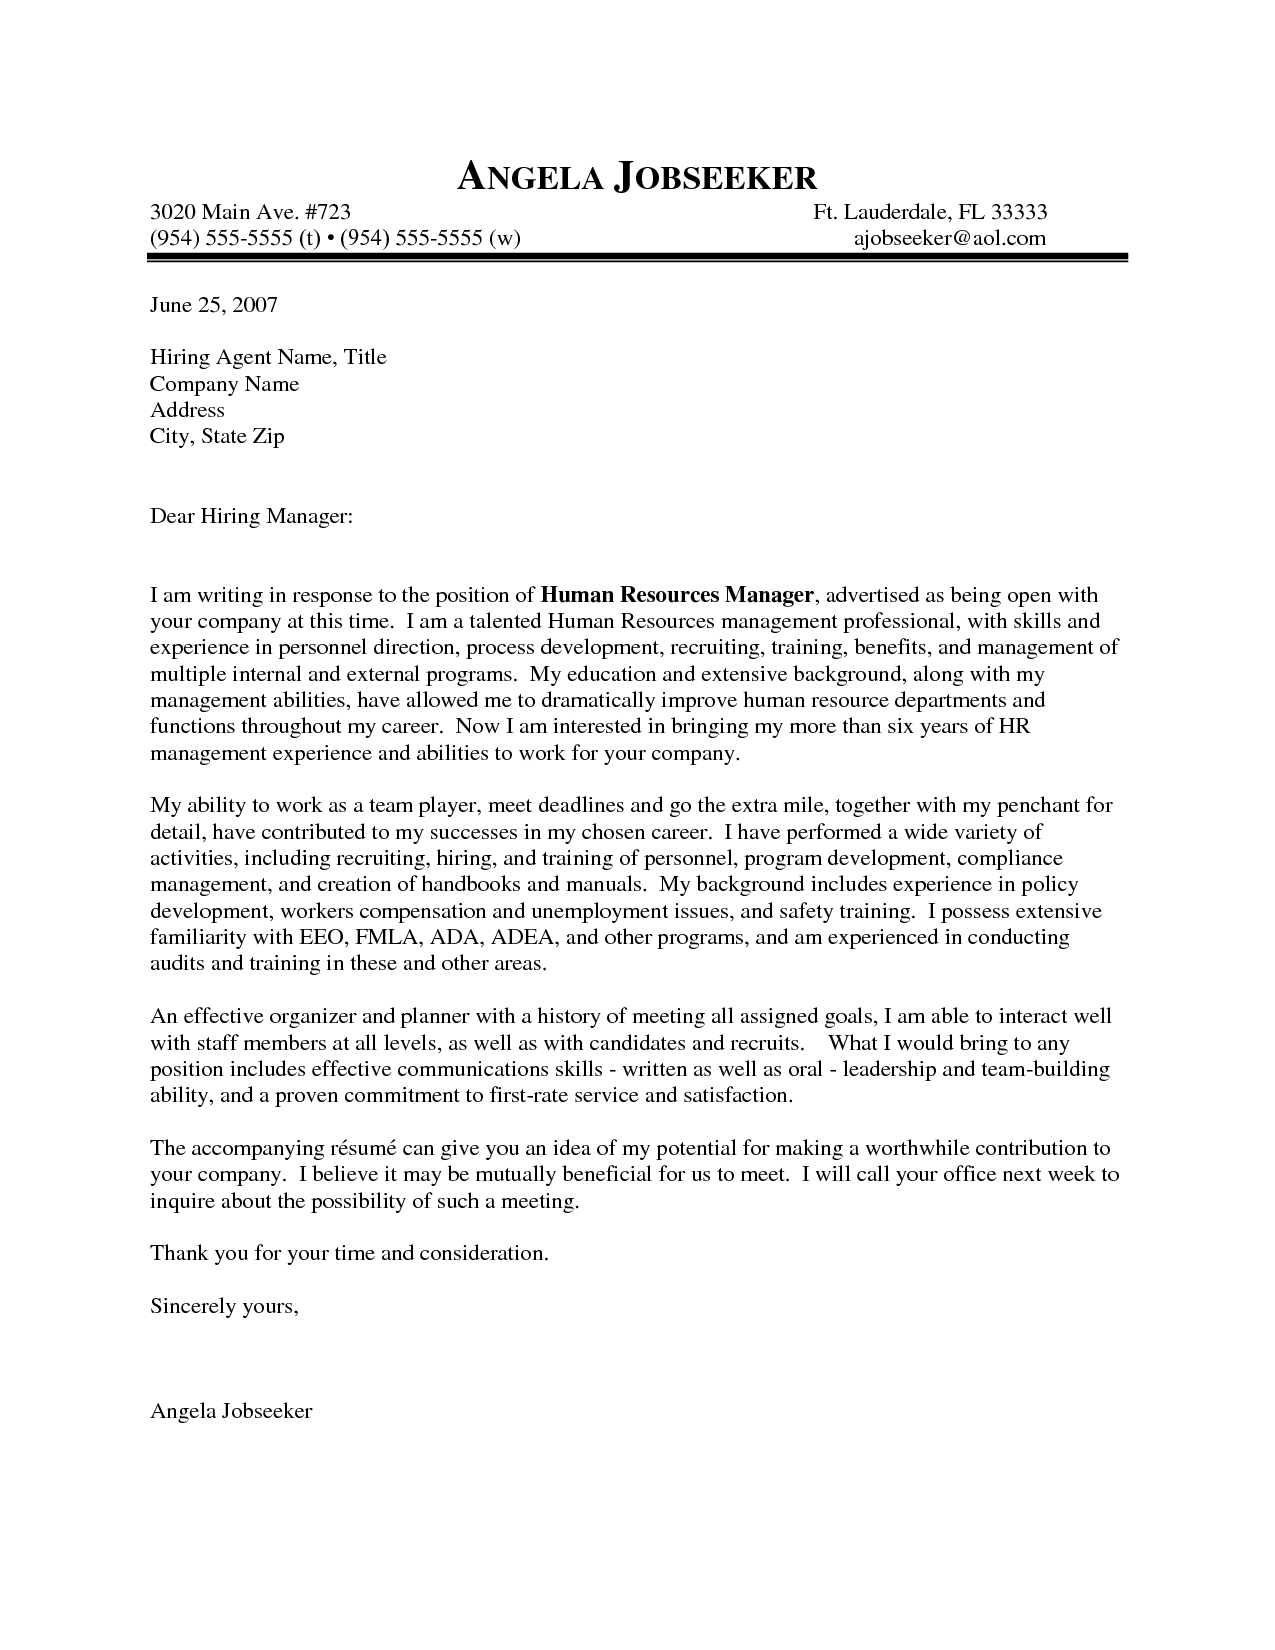 Resume Cover Letter Tips Outstanding Cover Letter Examples  Hr Manager Cover Letter